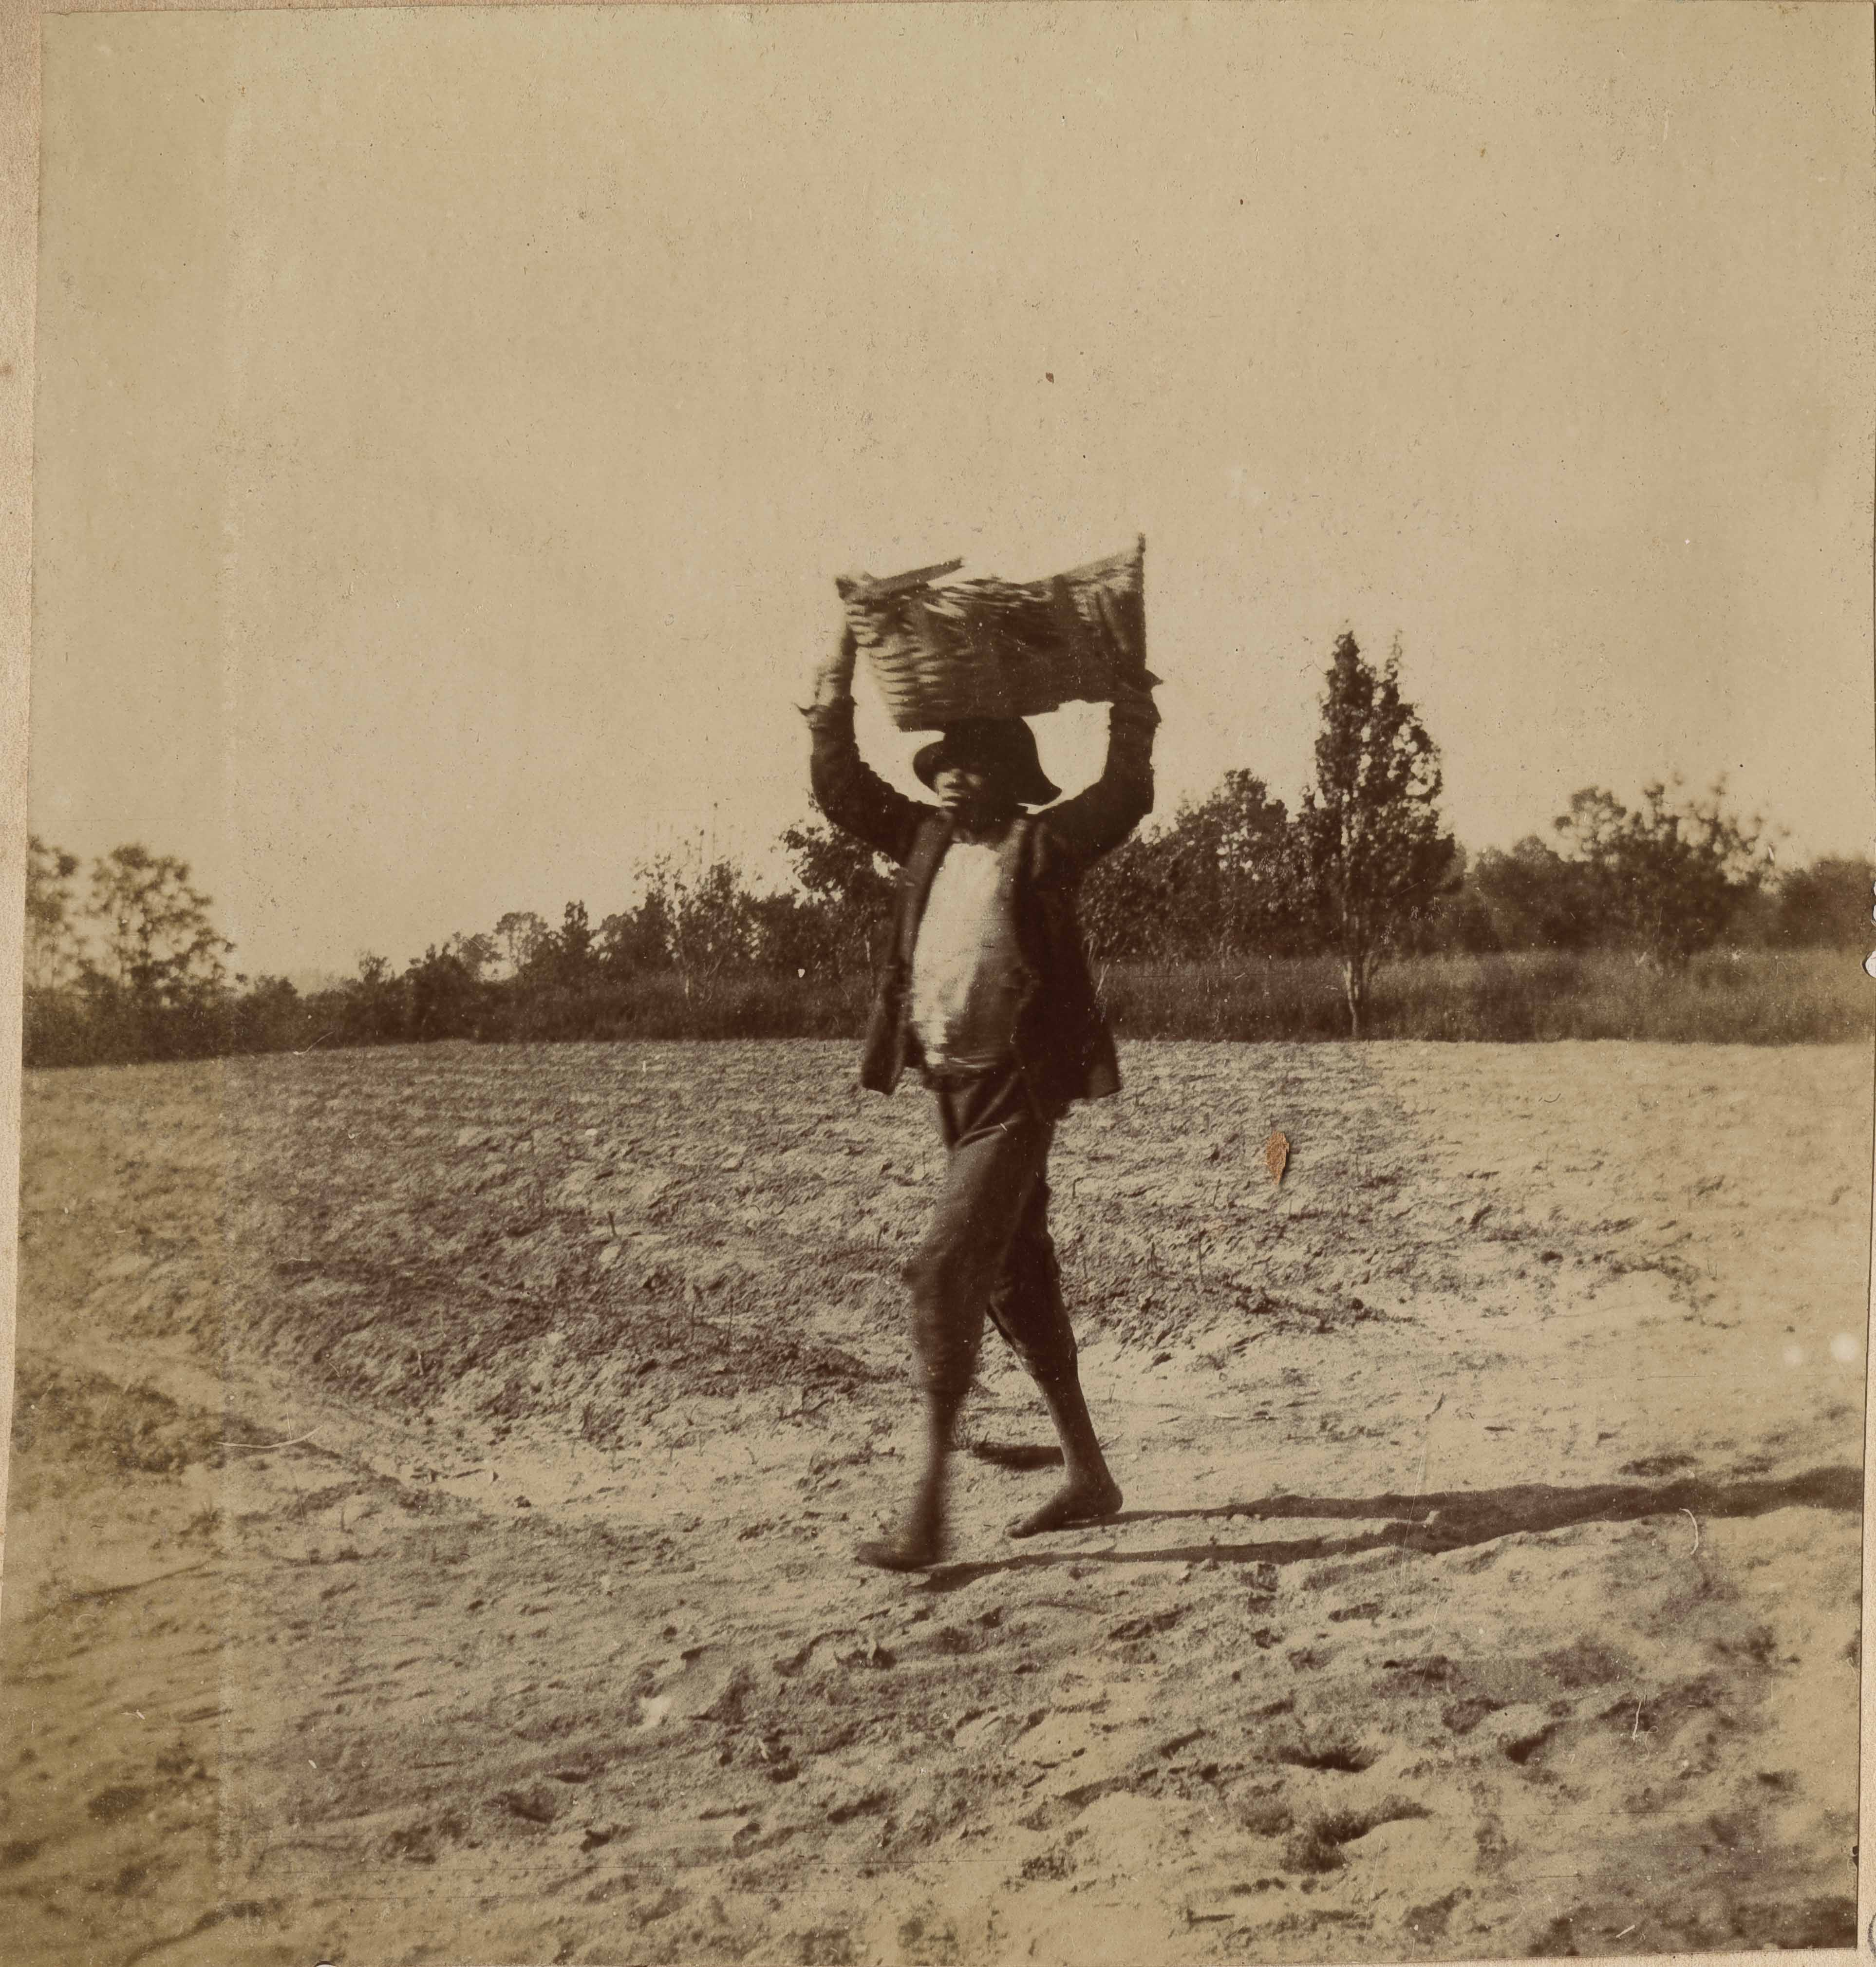 Man walking with basket on his head